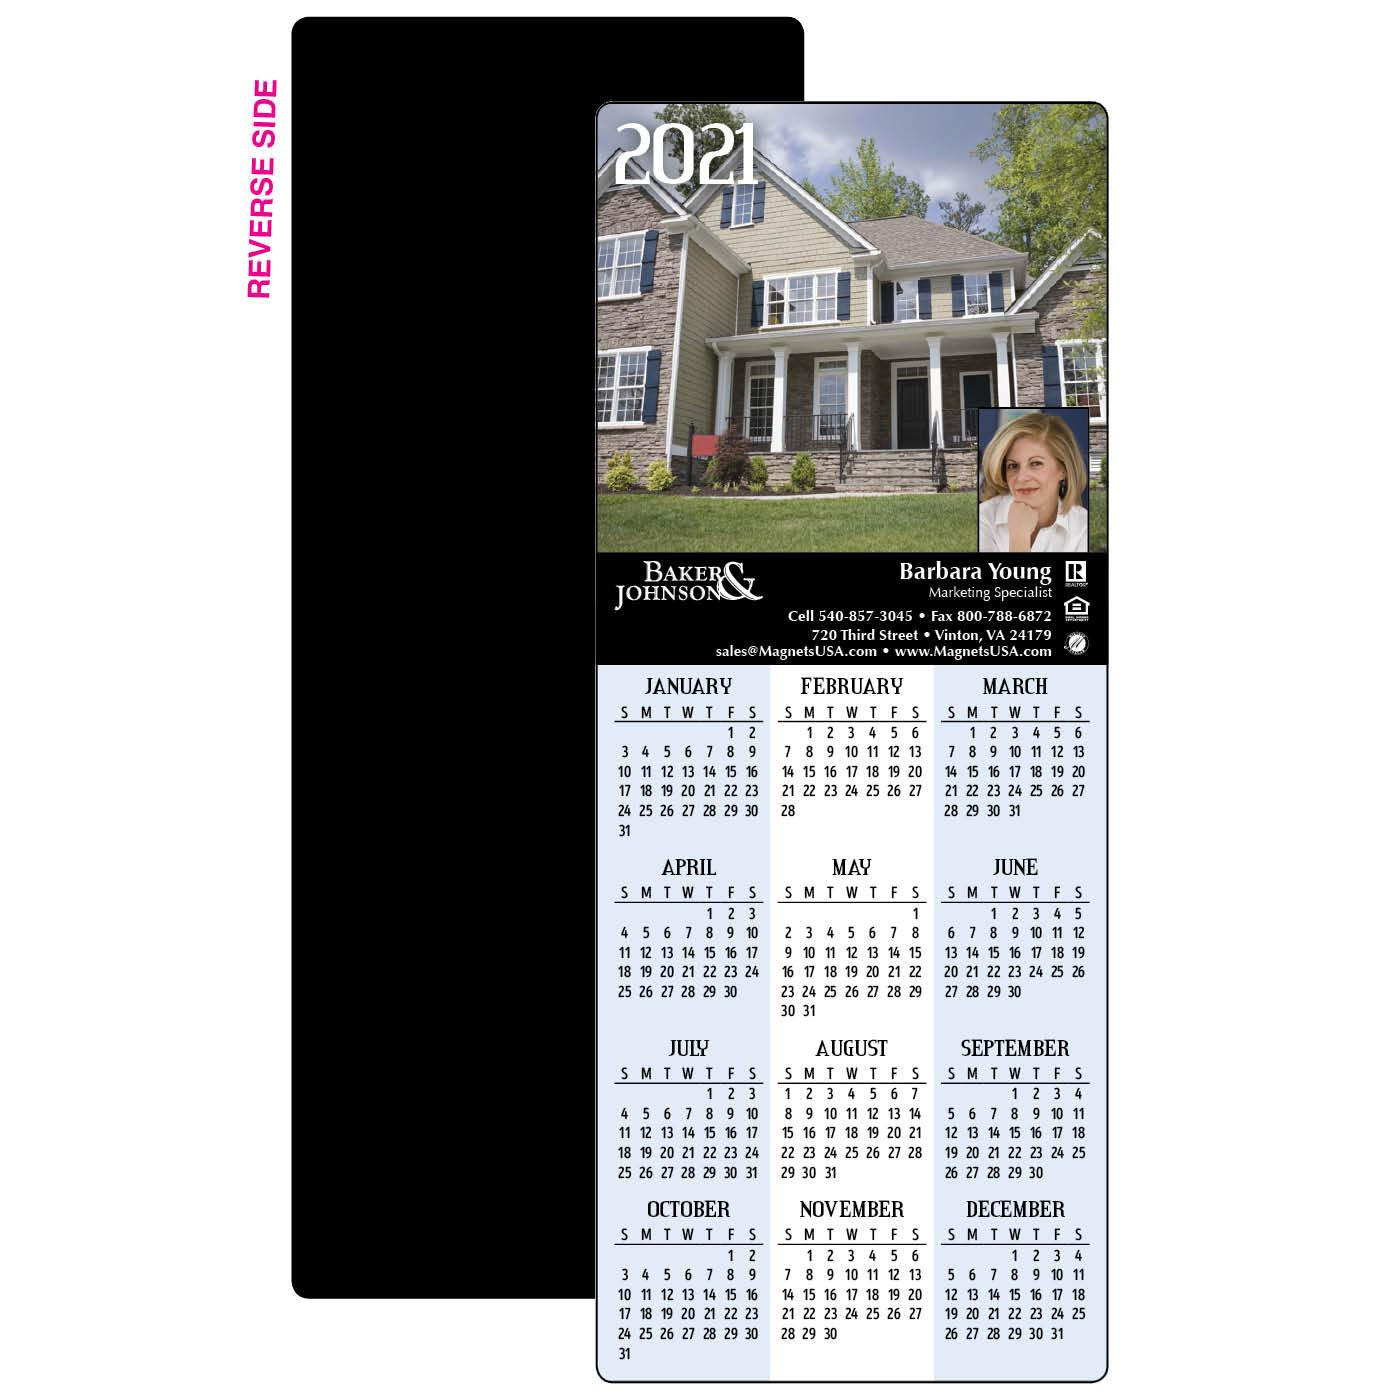 Calendar Magnet with Home Scene